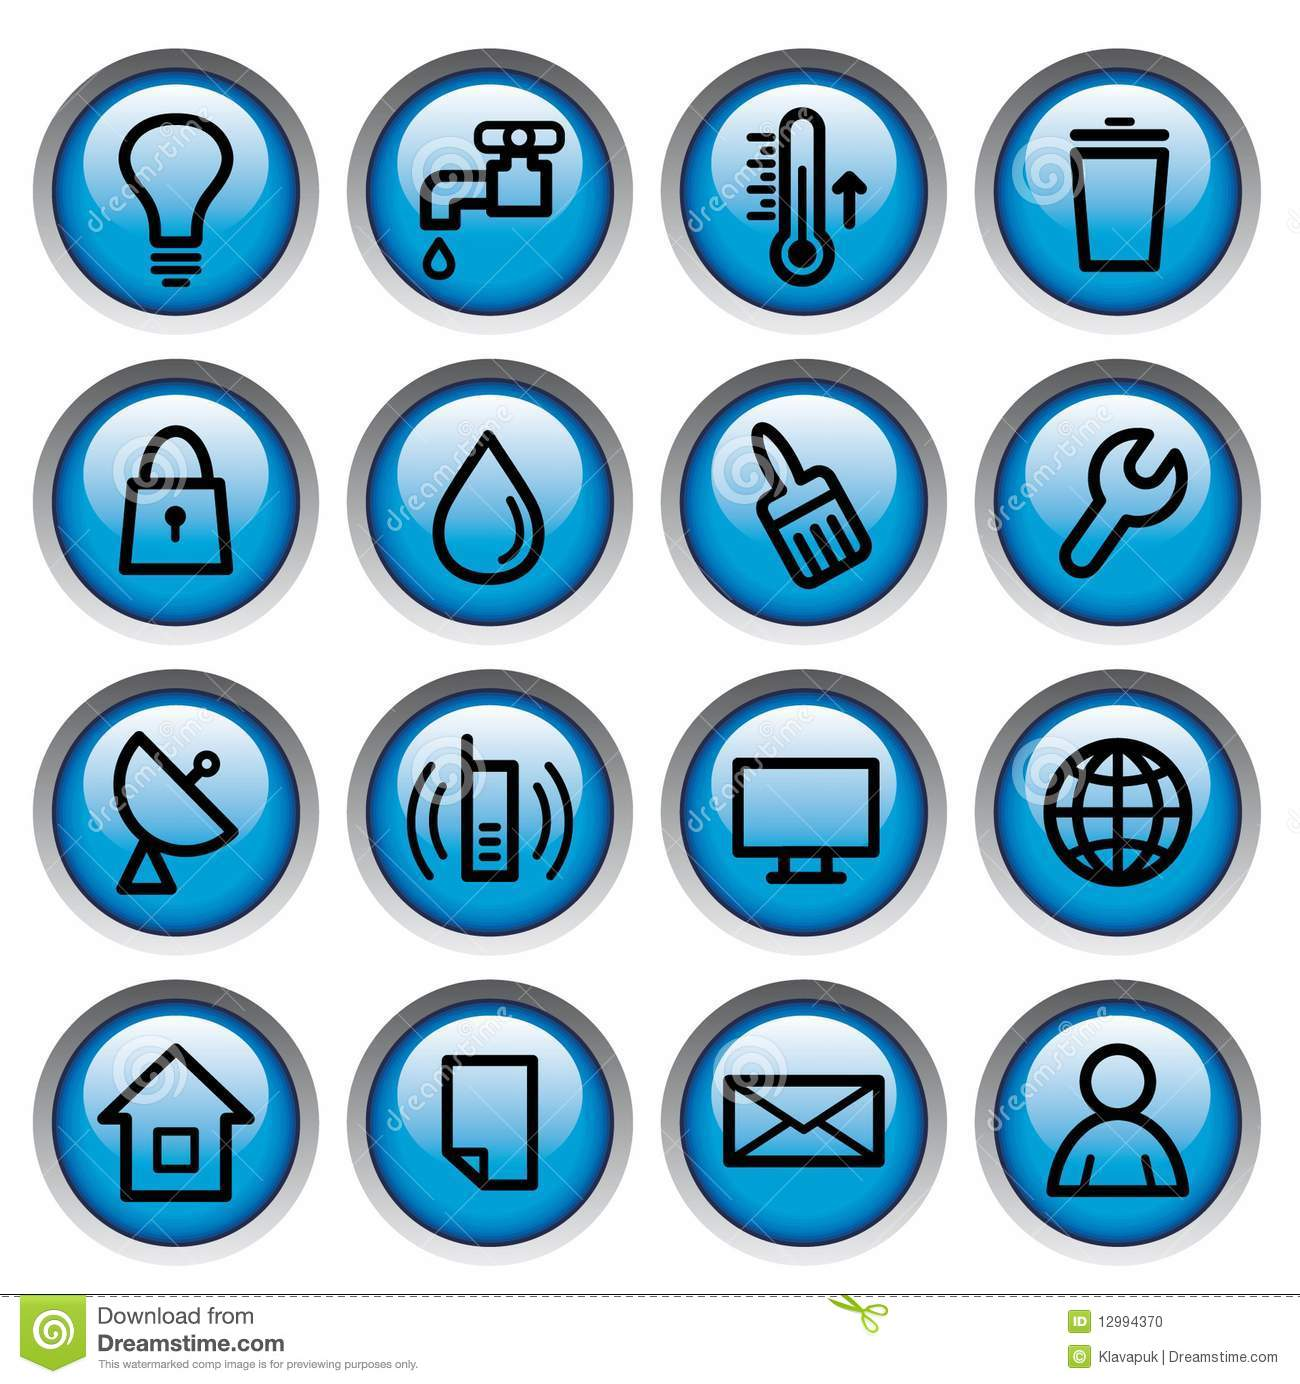 Utility Images, Stock Photos & Vectors | Shutterstock |Residential Utilities Icon